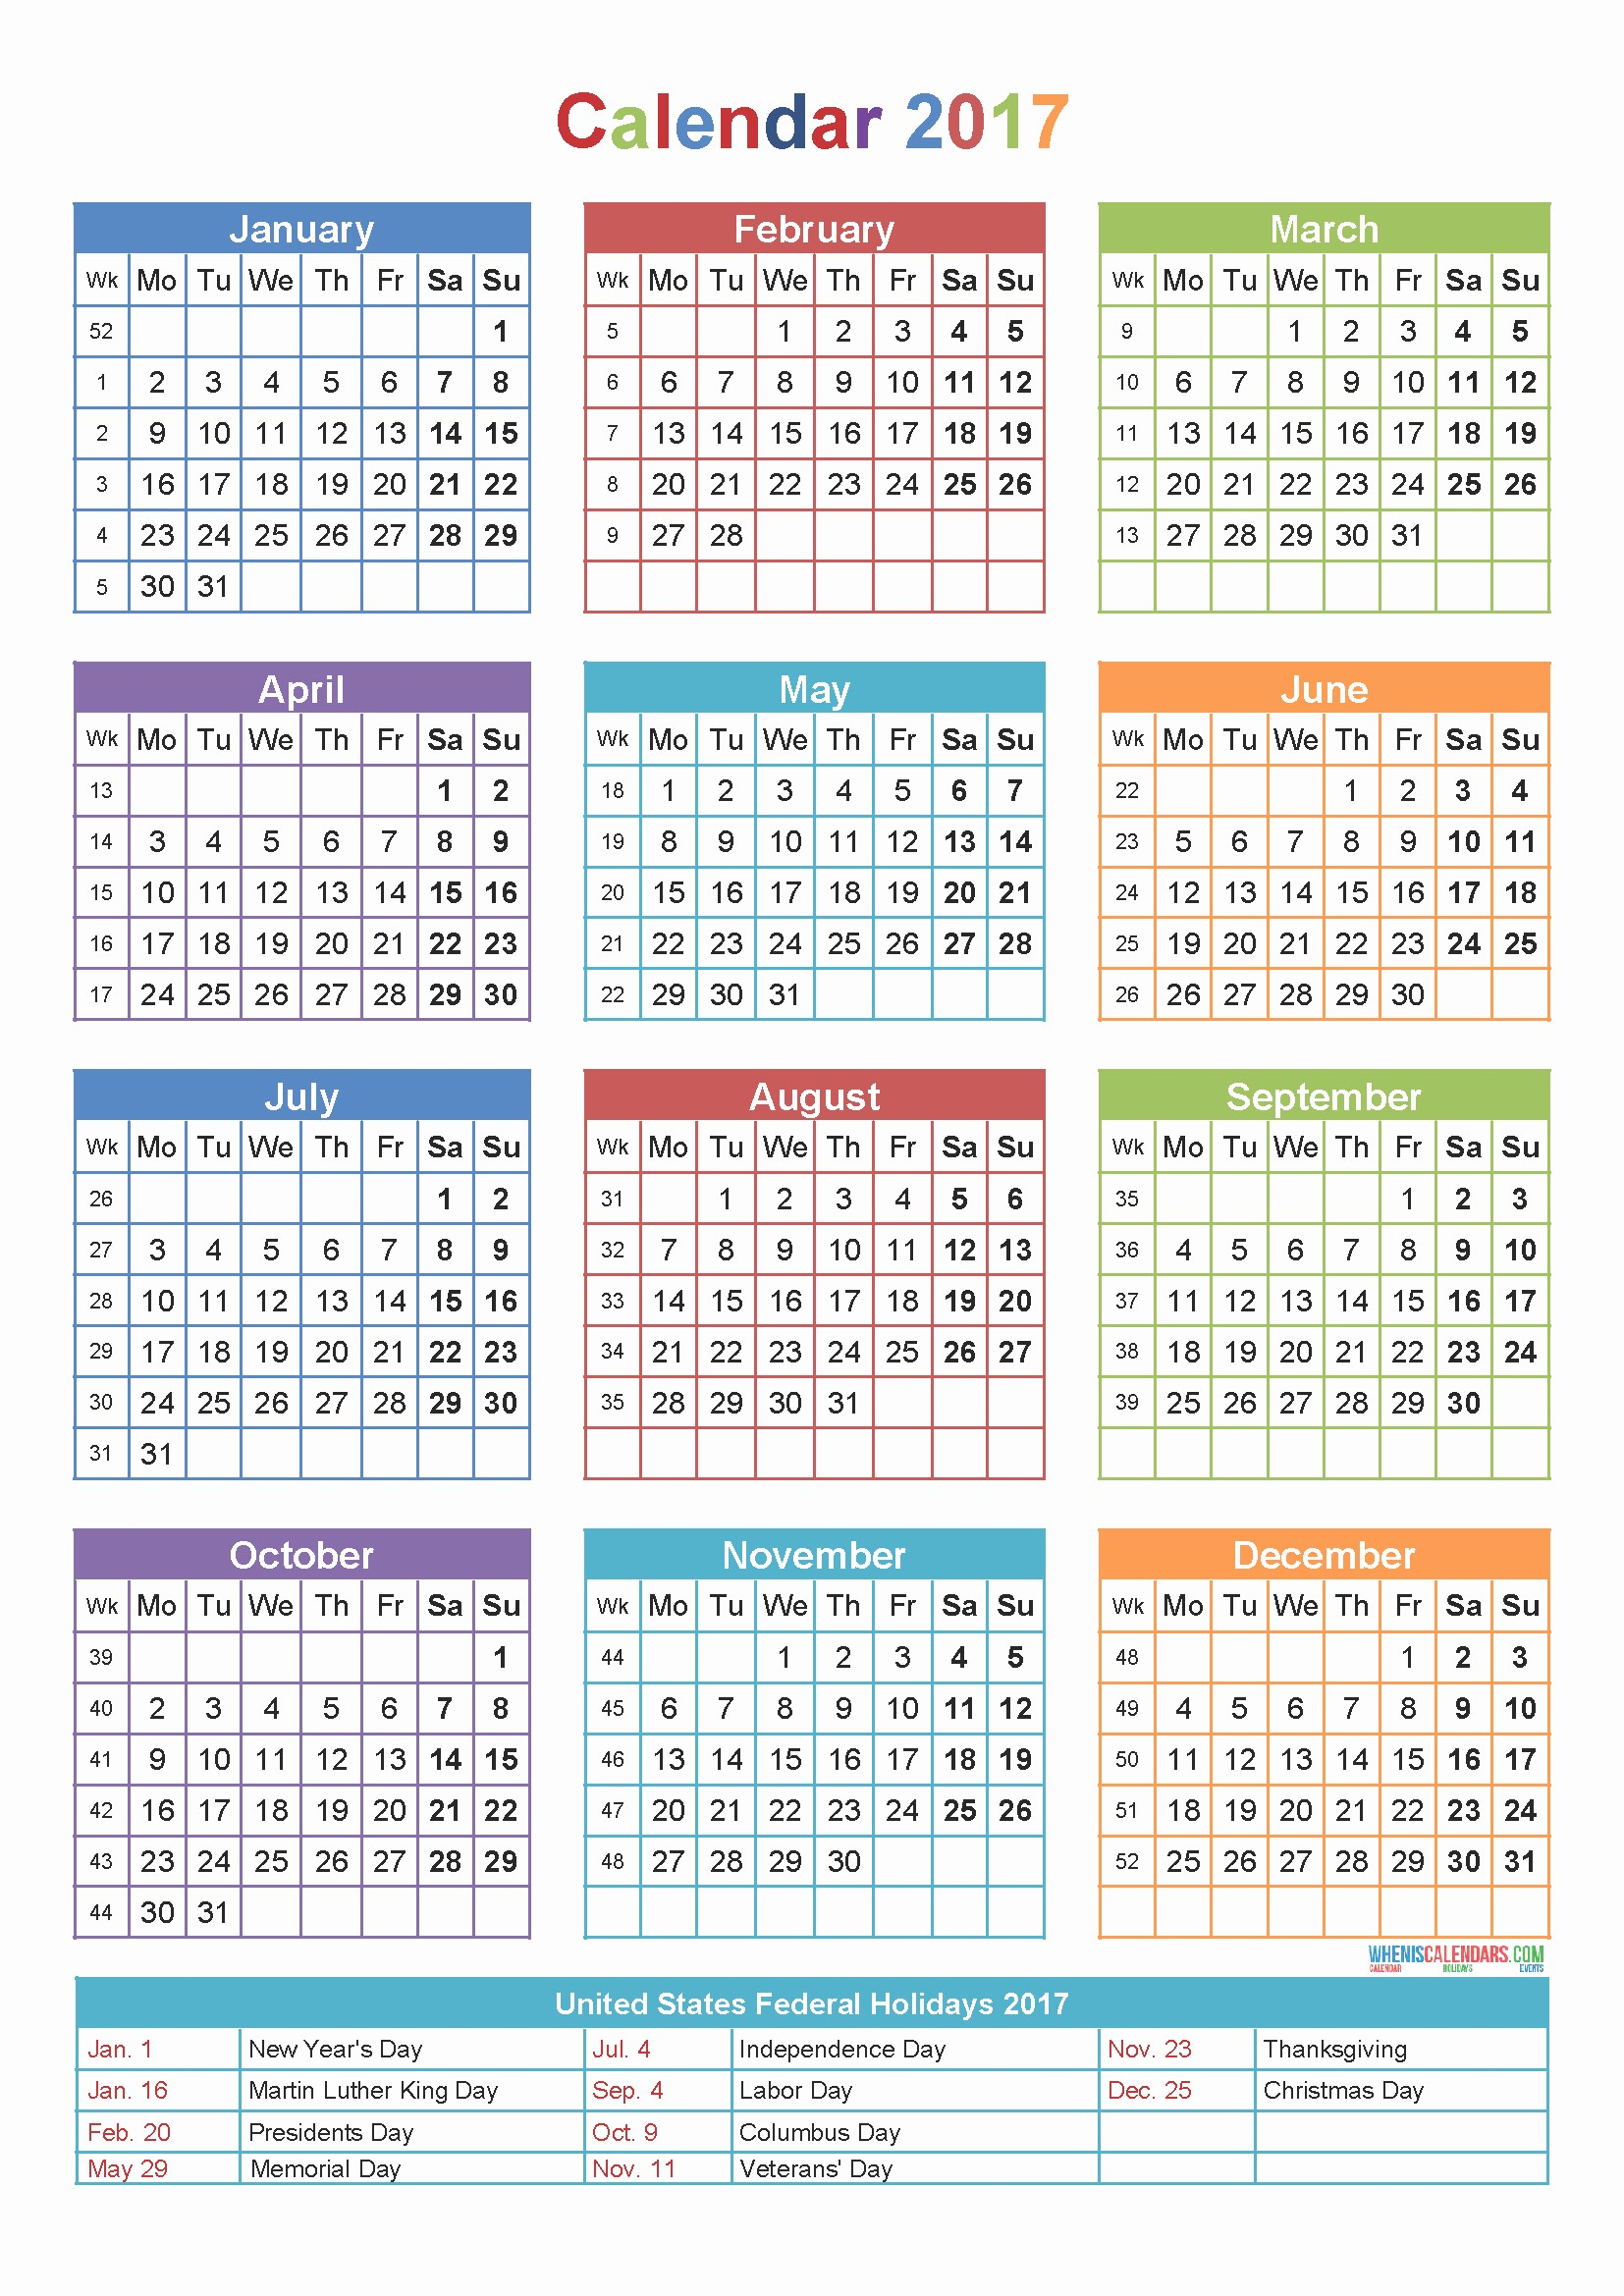 Empty Calendar March 2019 Mejores Y Más Novedosos Calendar Template 2019 2017 Best March 2019 Calendar Template Of Empty Calendar March 2019 Más Recientemente Liberado 10 Stylish Free Printable Calendars for 2019